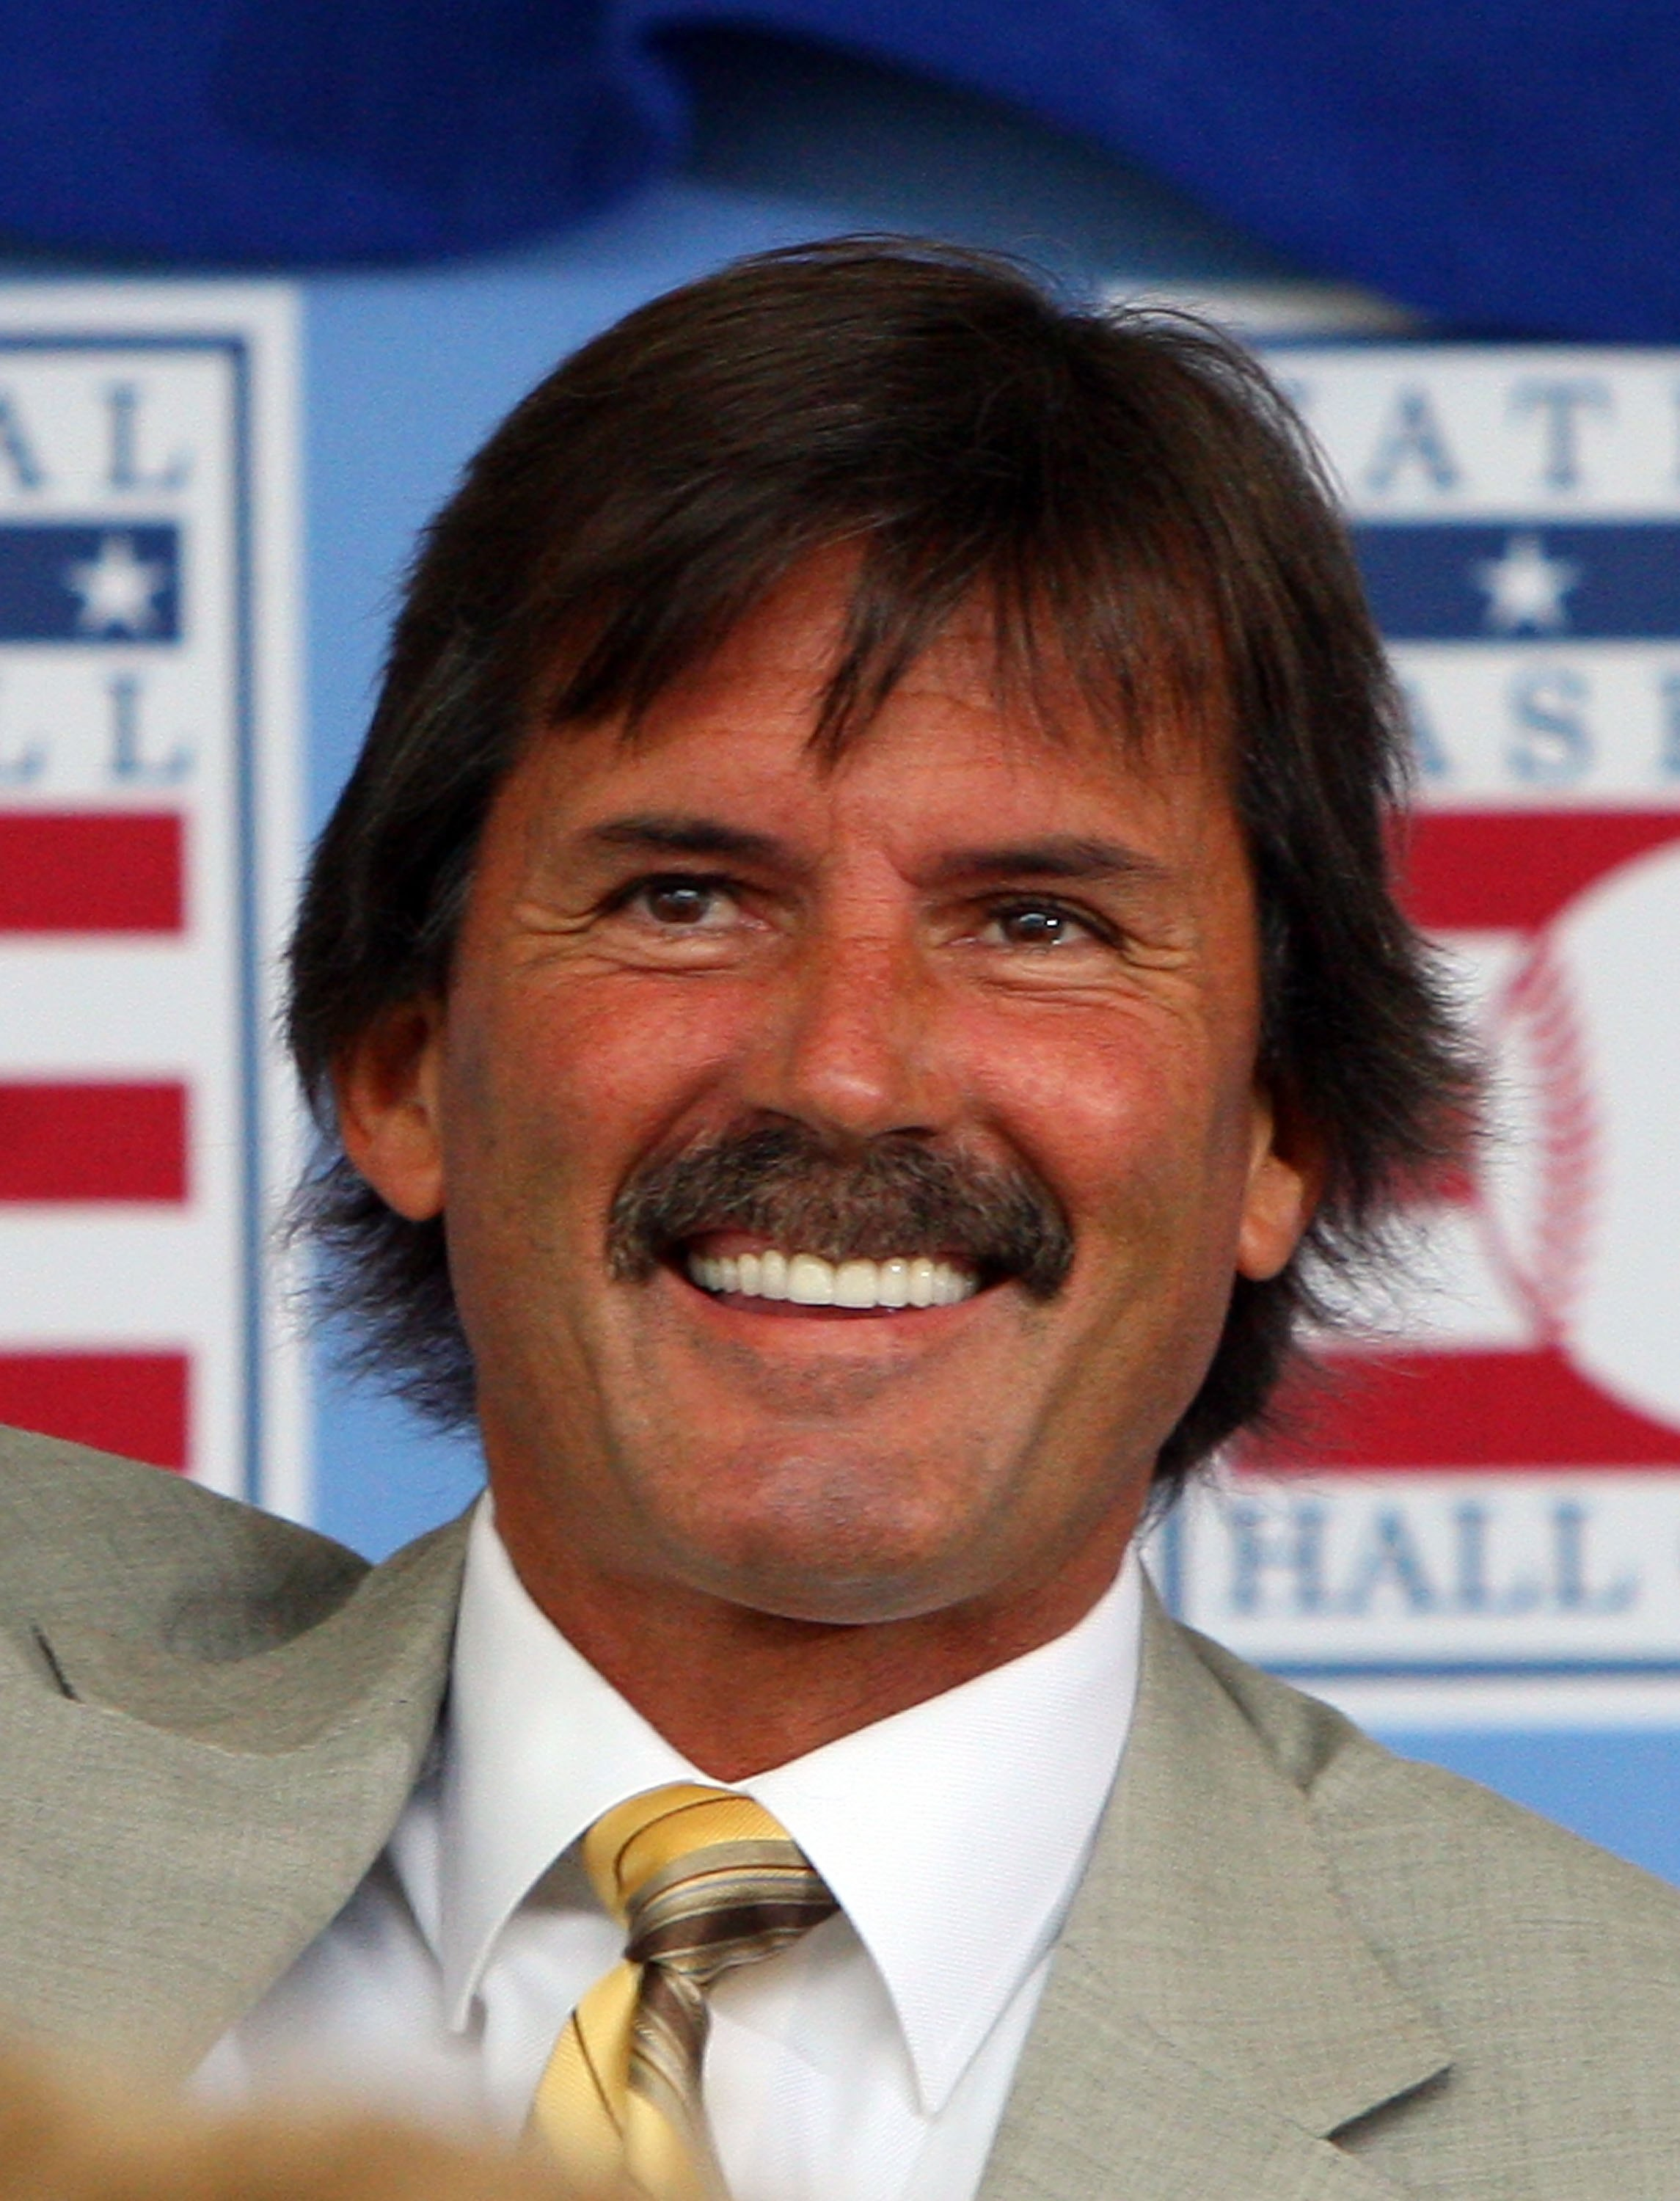 COOPERSTOWN, NY - JULY 26:  Hall of Famer Dennis Eckersley looks on at Clark Sports Center during the 2009  Baseball Hall of Fame induction ceremony on July 26, 2009 in Cooperstown, New York.  (Photo by Jim McIsaac/Getty Images)